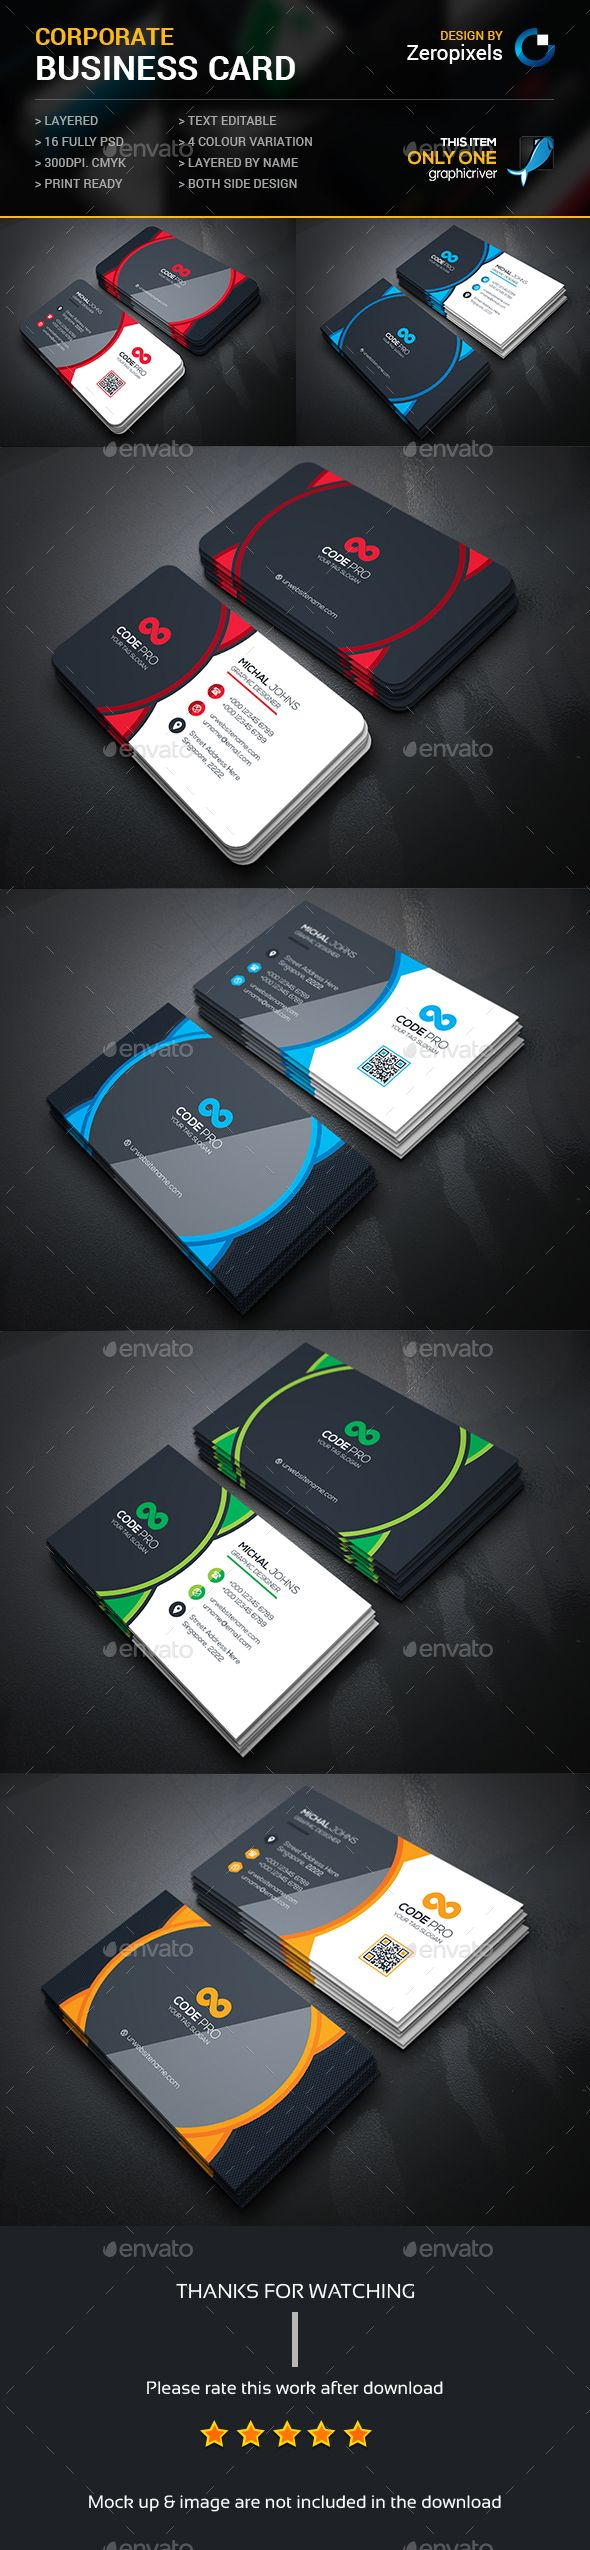 160 best business cards images on pinterest business card design 160 best business cards images on pinterest business card design templates business card templates and visiting card templates colourmoves